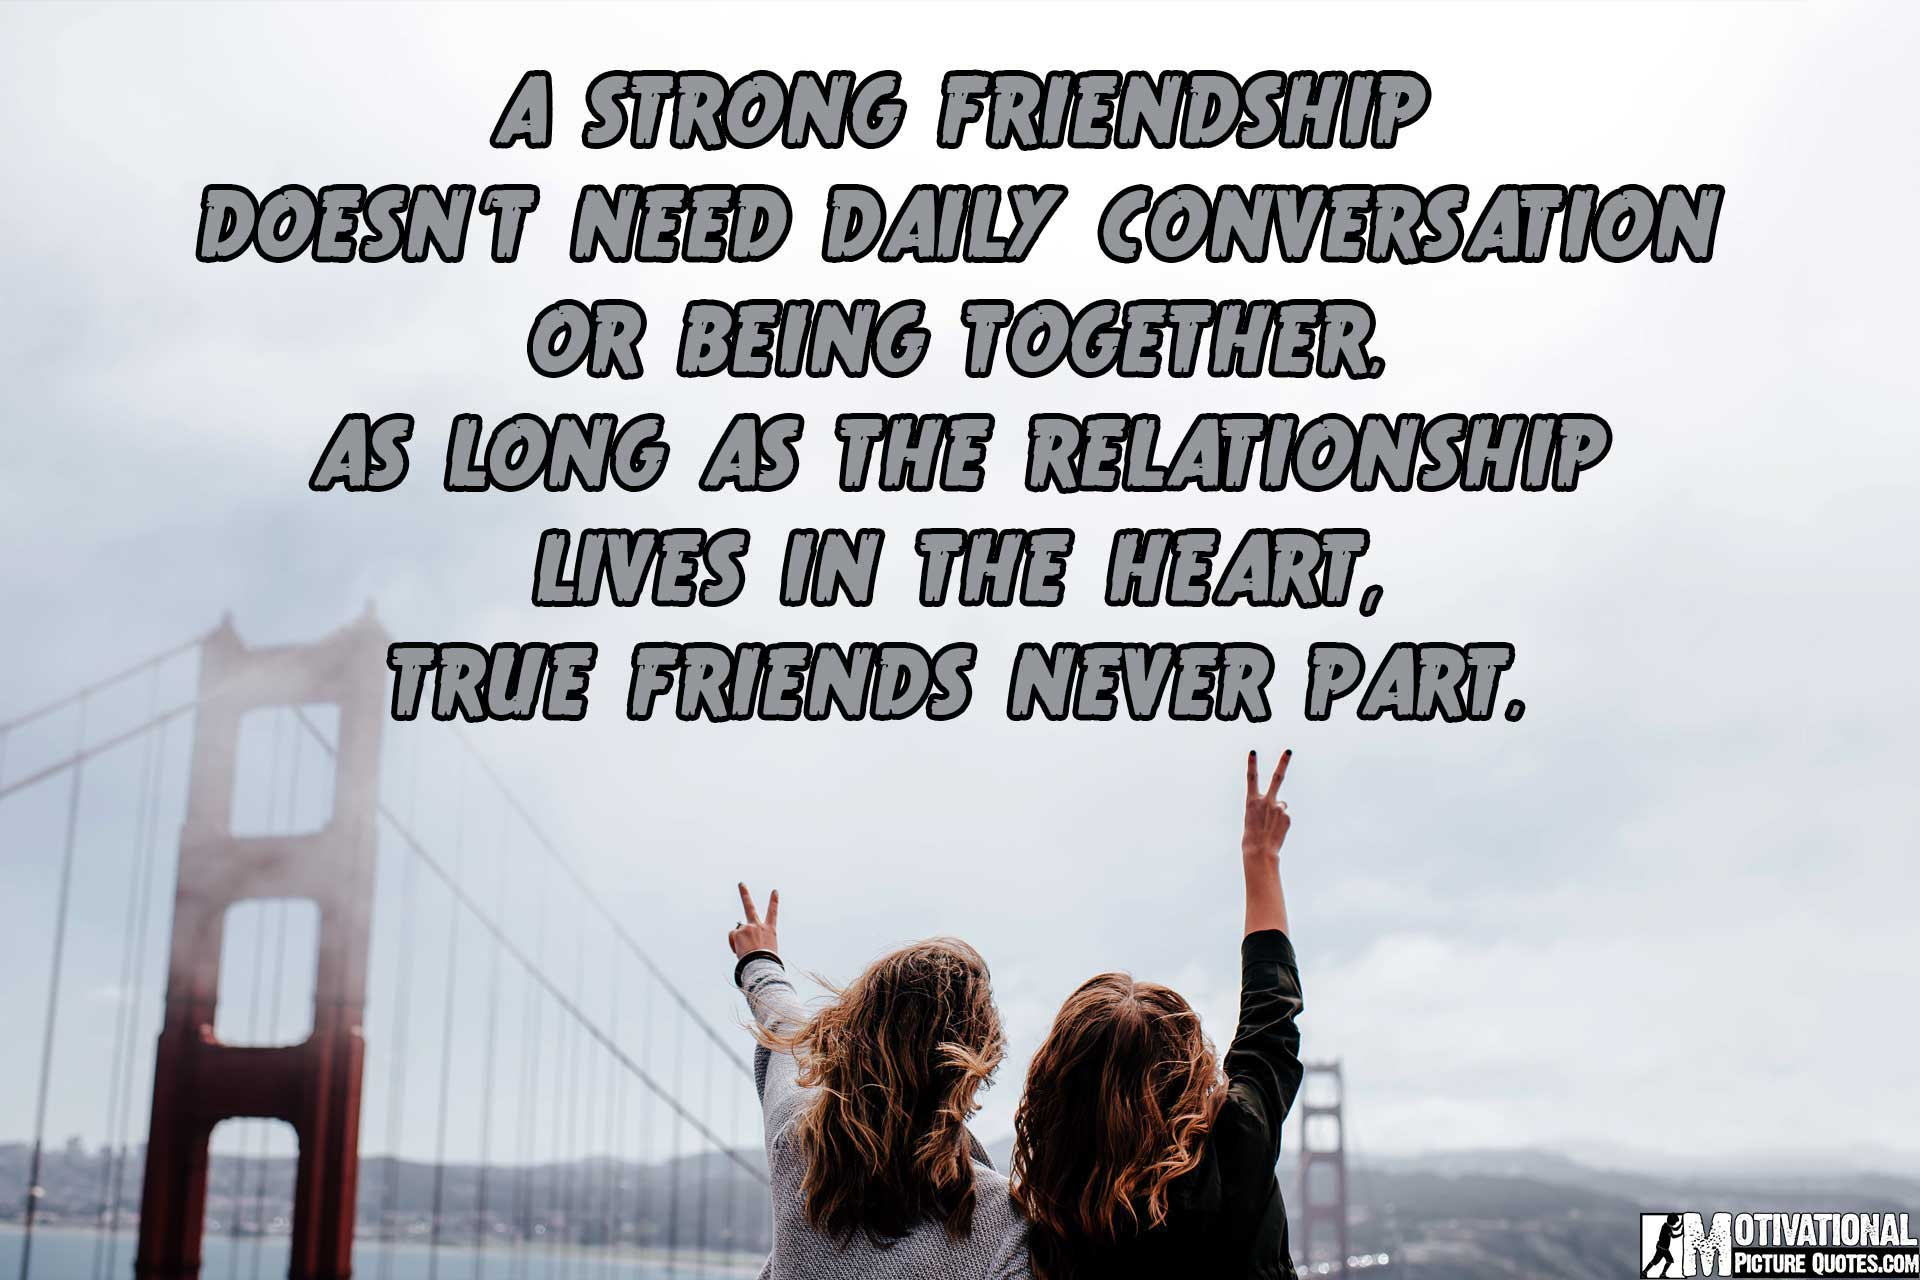 Inspirational Quotes About Friendship 25 Inspirational Friendship Quotes Images  Free Download